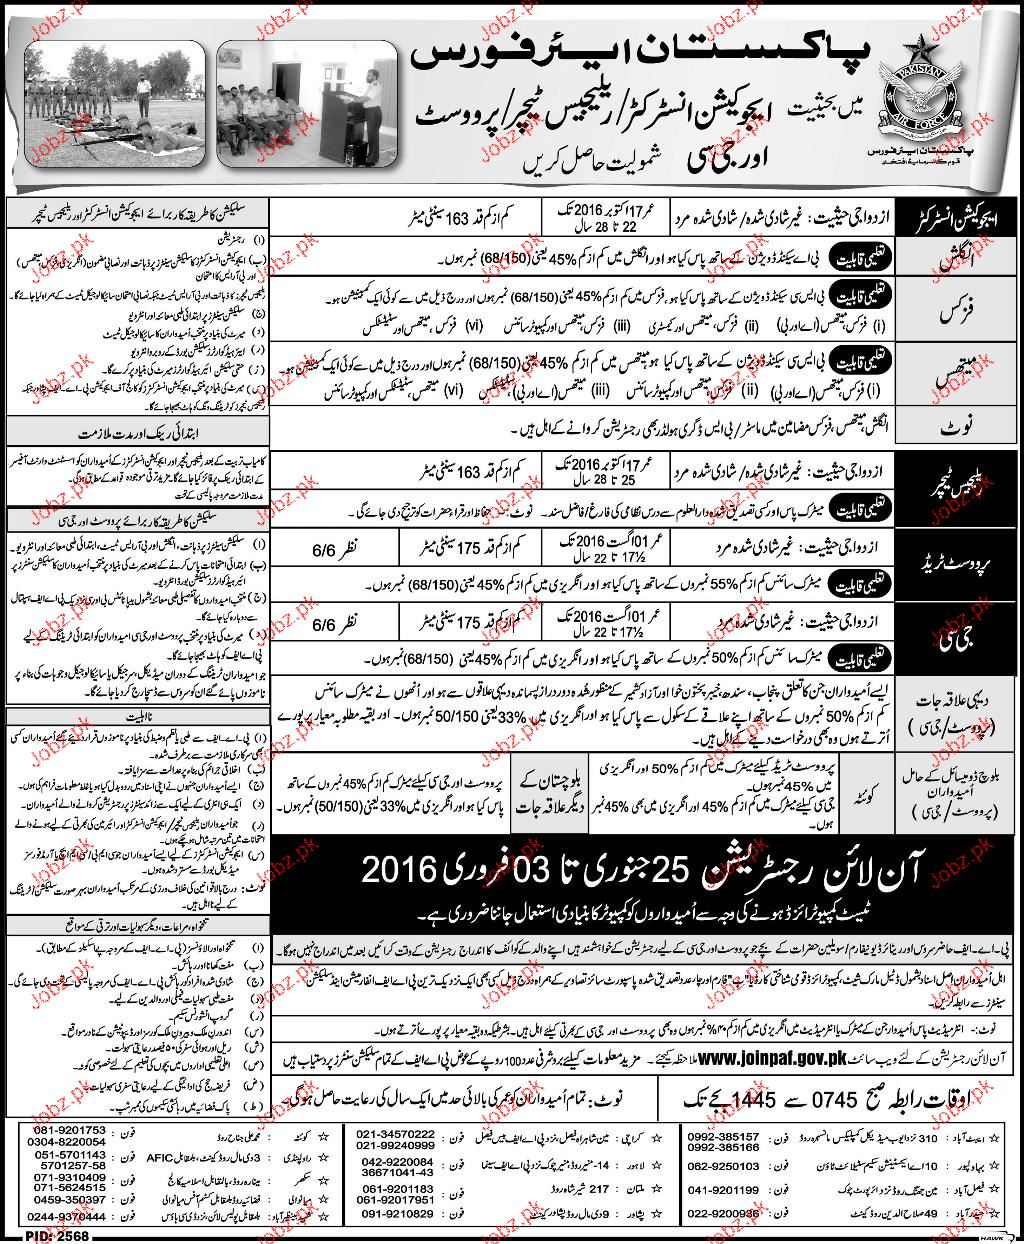 Recruitment in PAF As Education Instructors, Teachers, GC